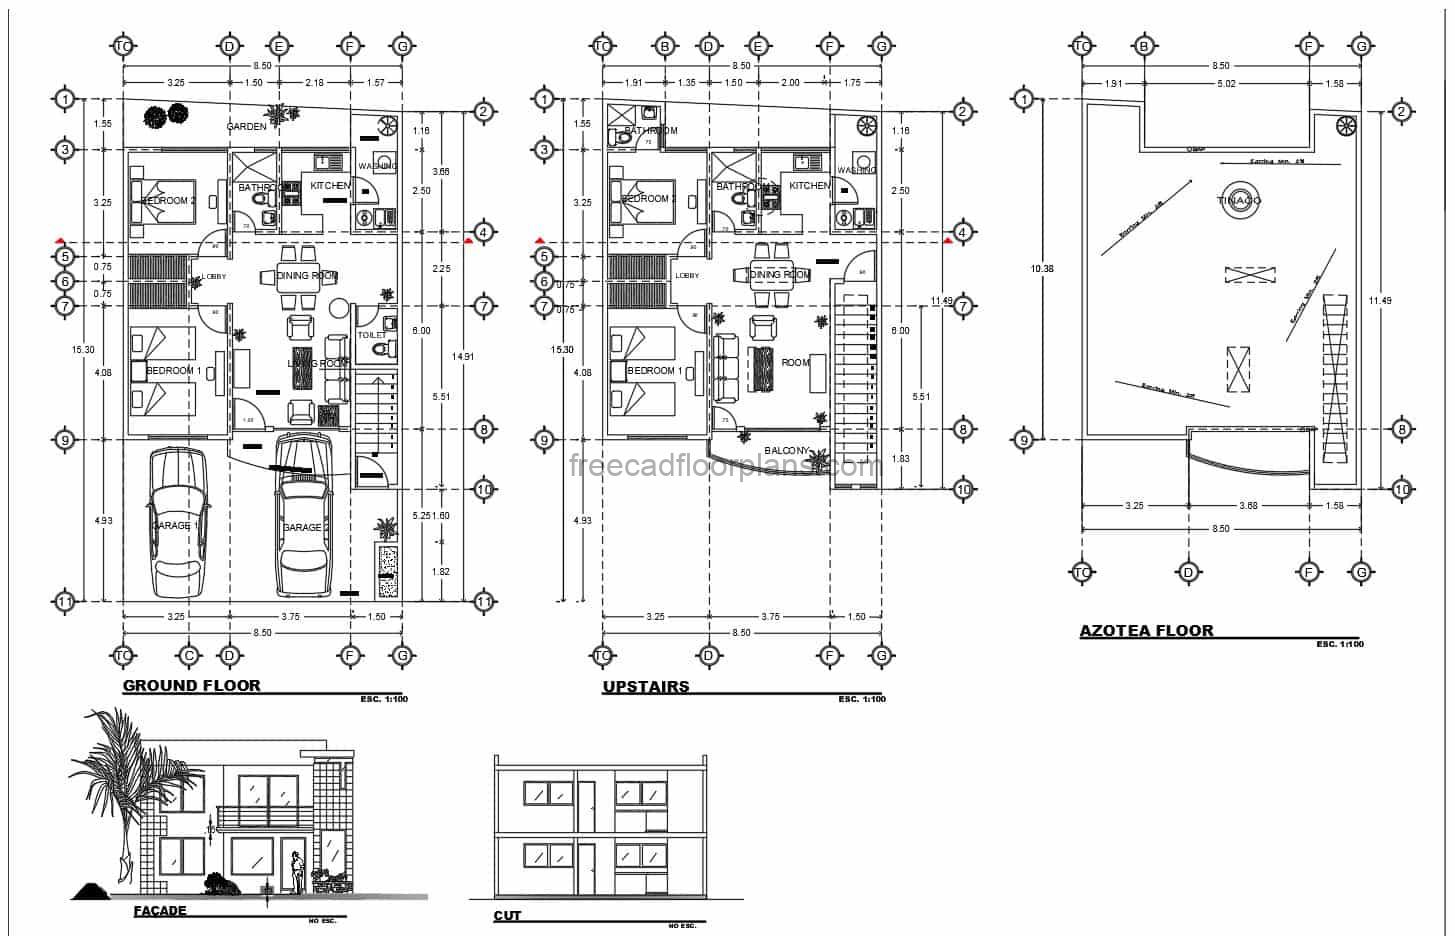 Architectural and dimensional plans in DWG AutoCAD format of a two level residence with four bedrooms, each level has two bedrooms and can function as independent houses. Plans with dimensions and blocks for free download in DWG format.